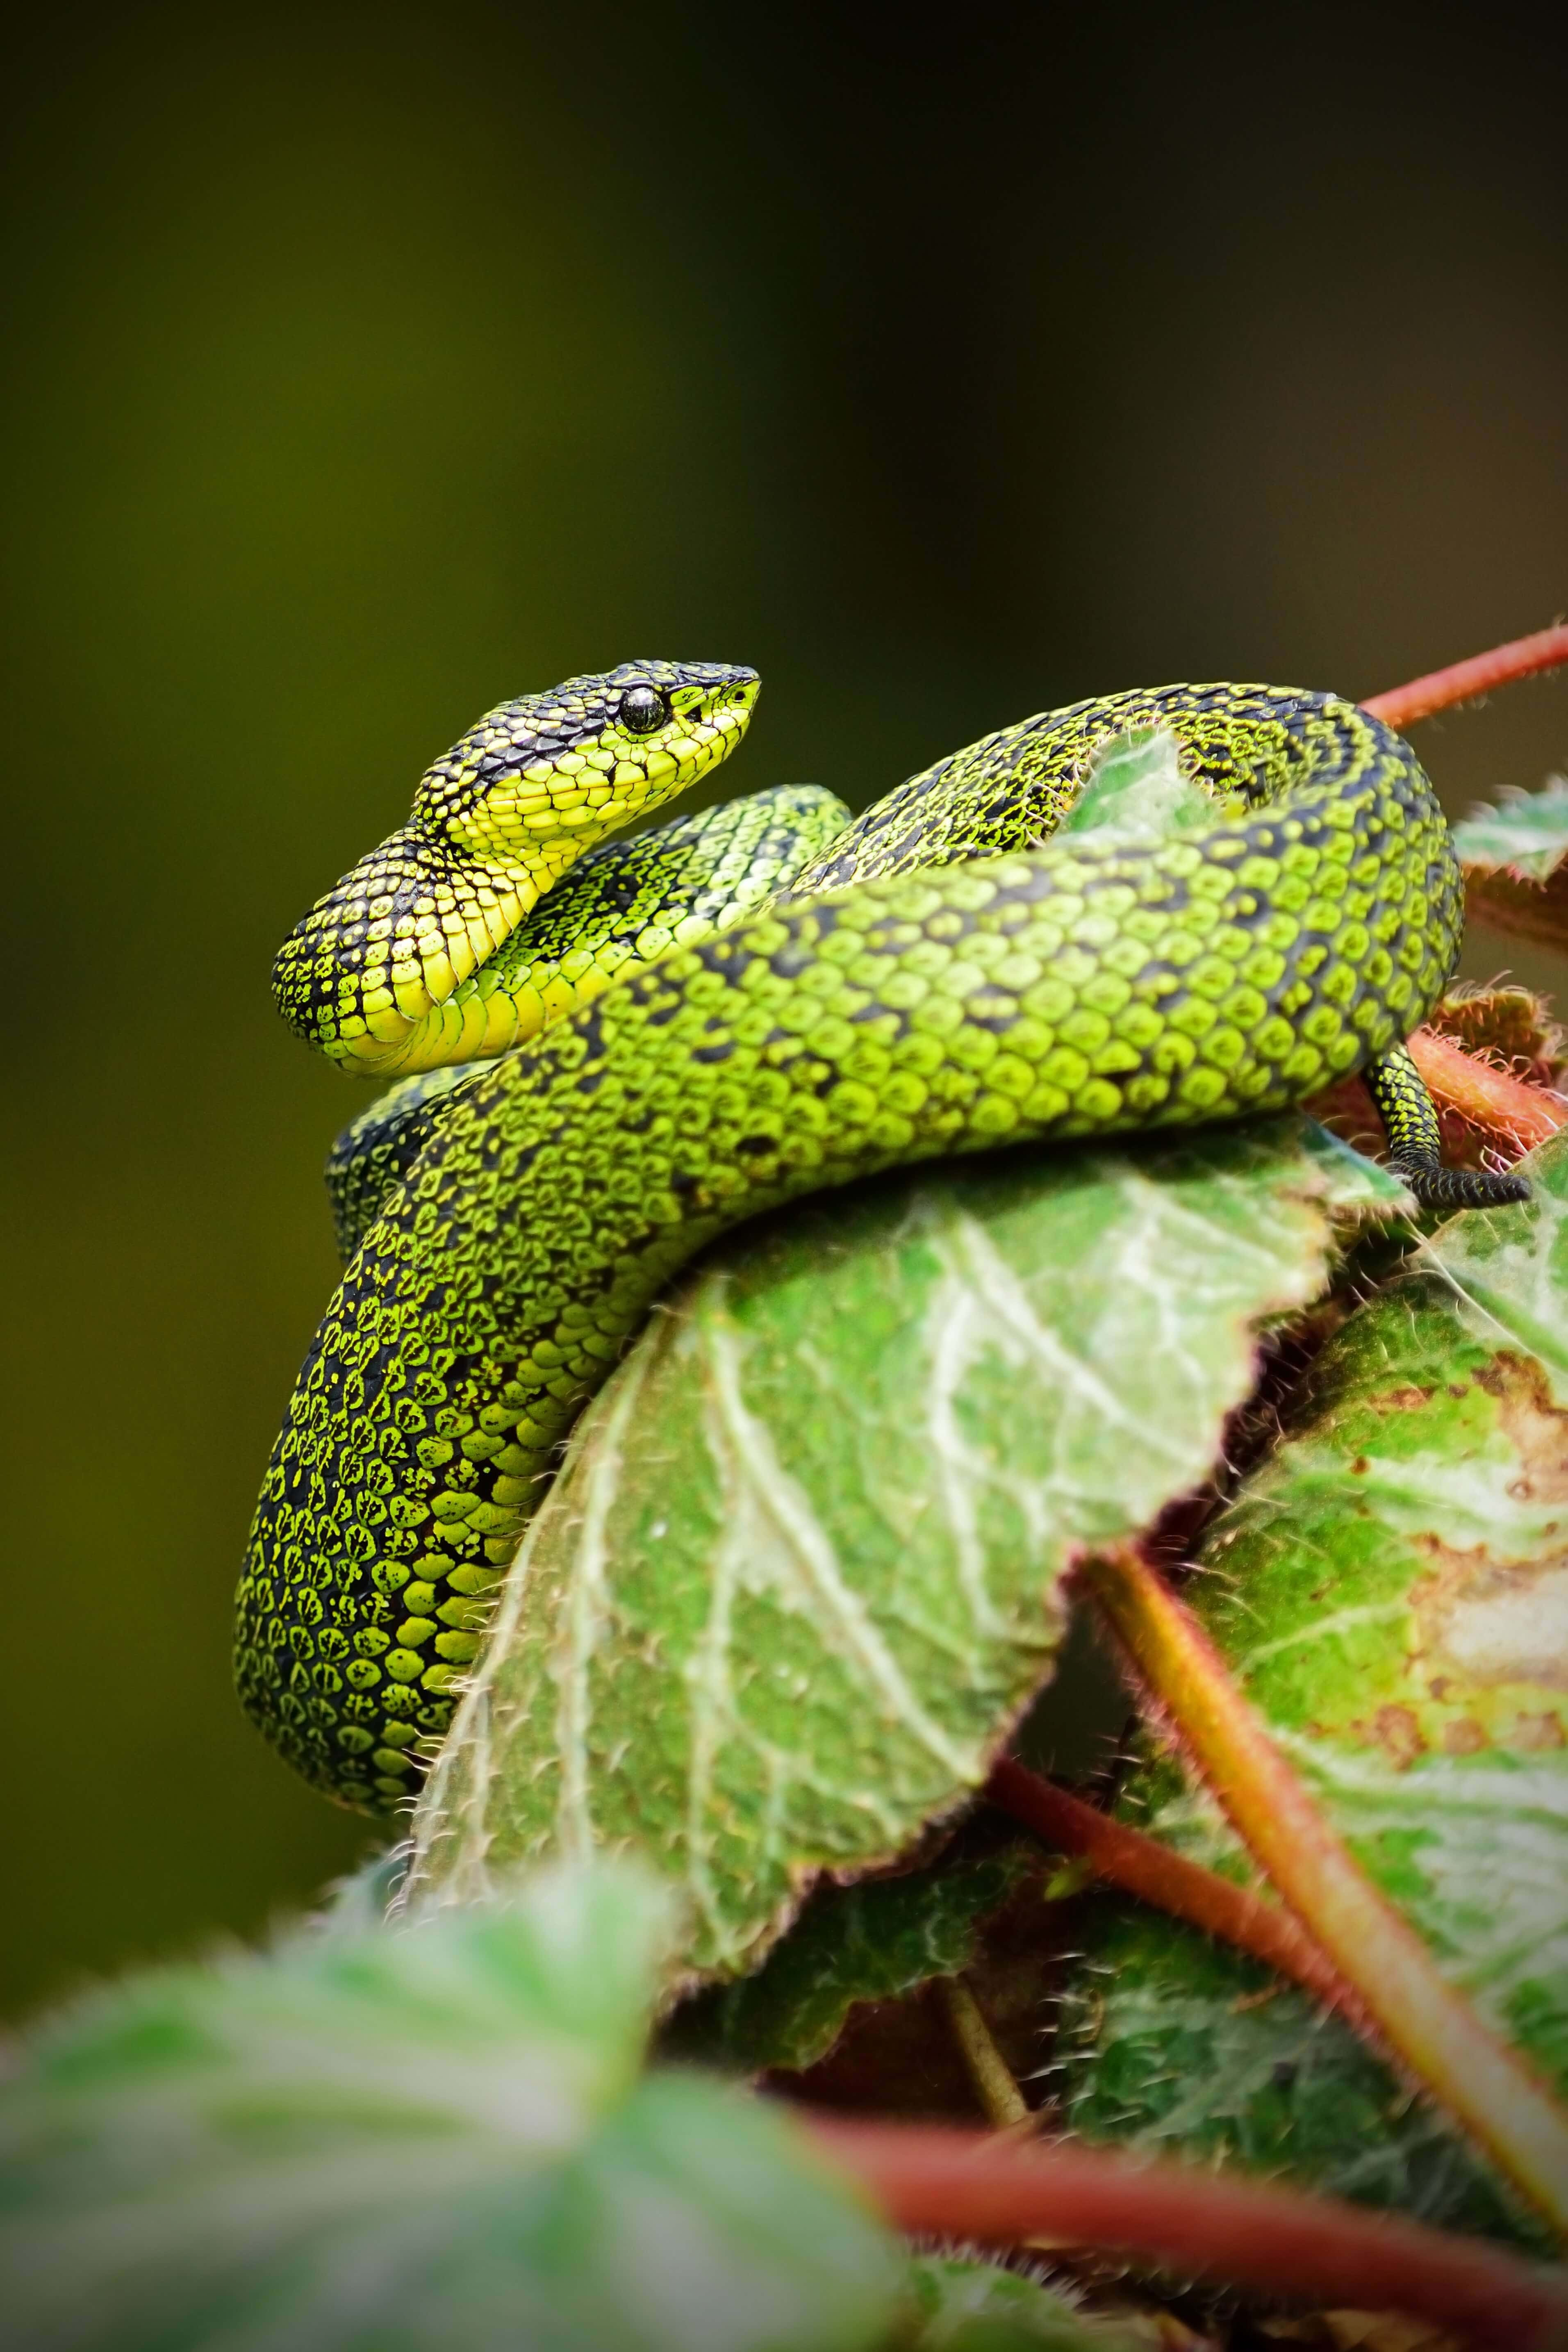 Moving to Australia? 20 of the worlds 25 deadliest snakes can be found in Australia